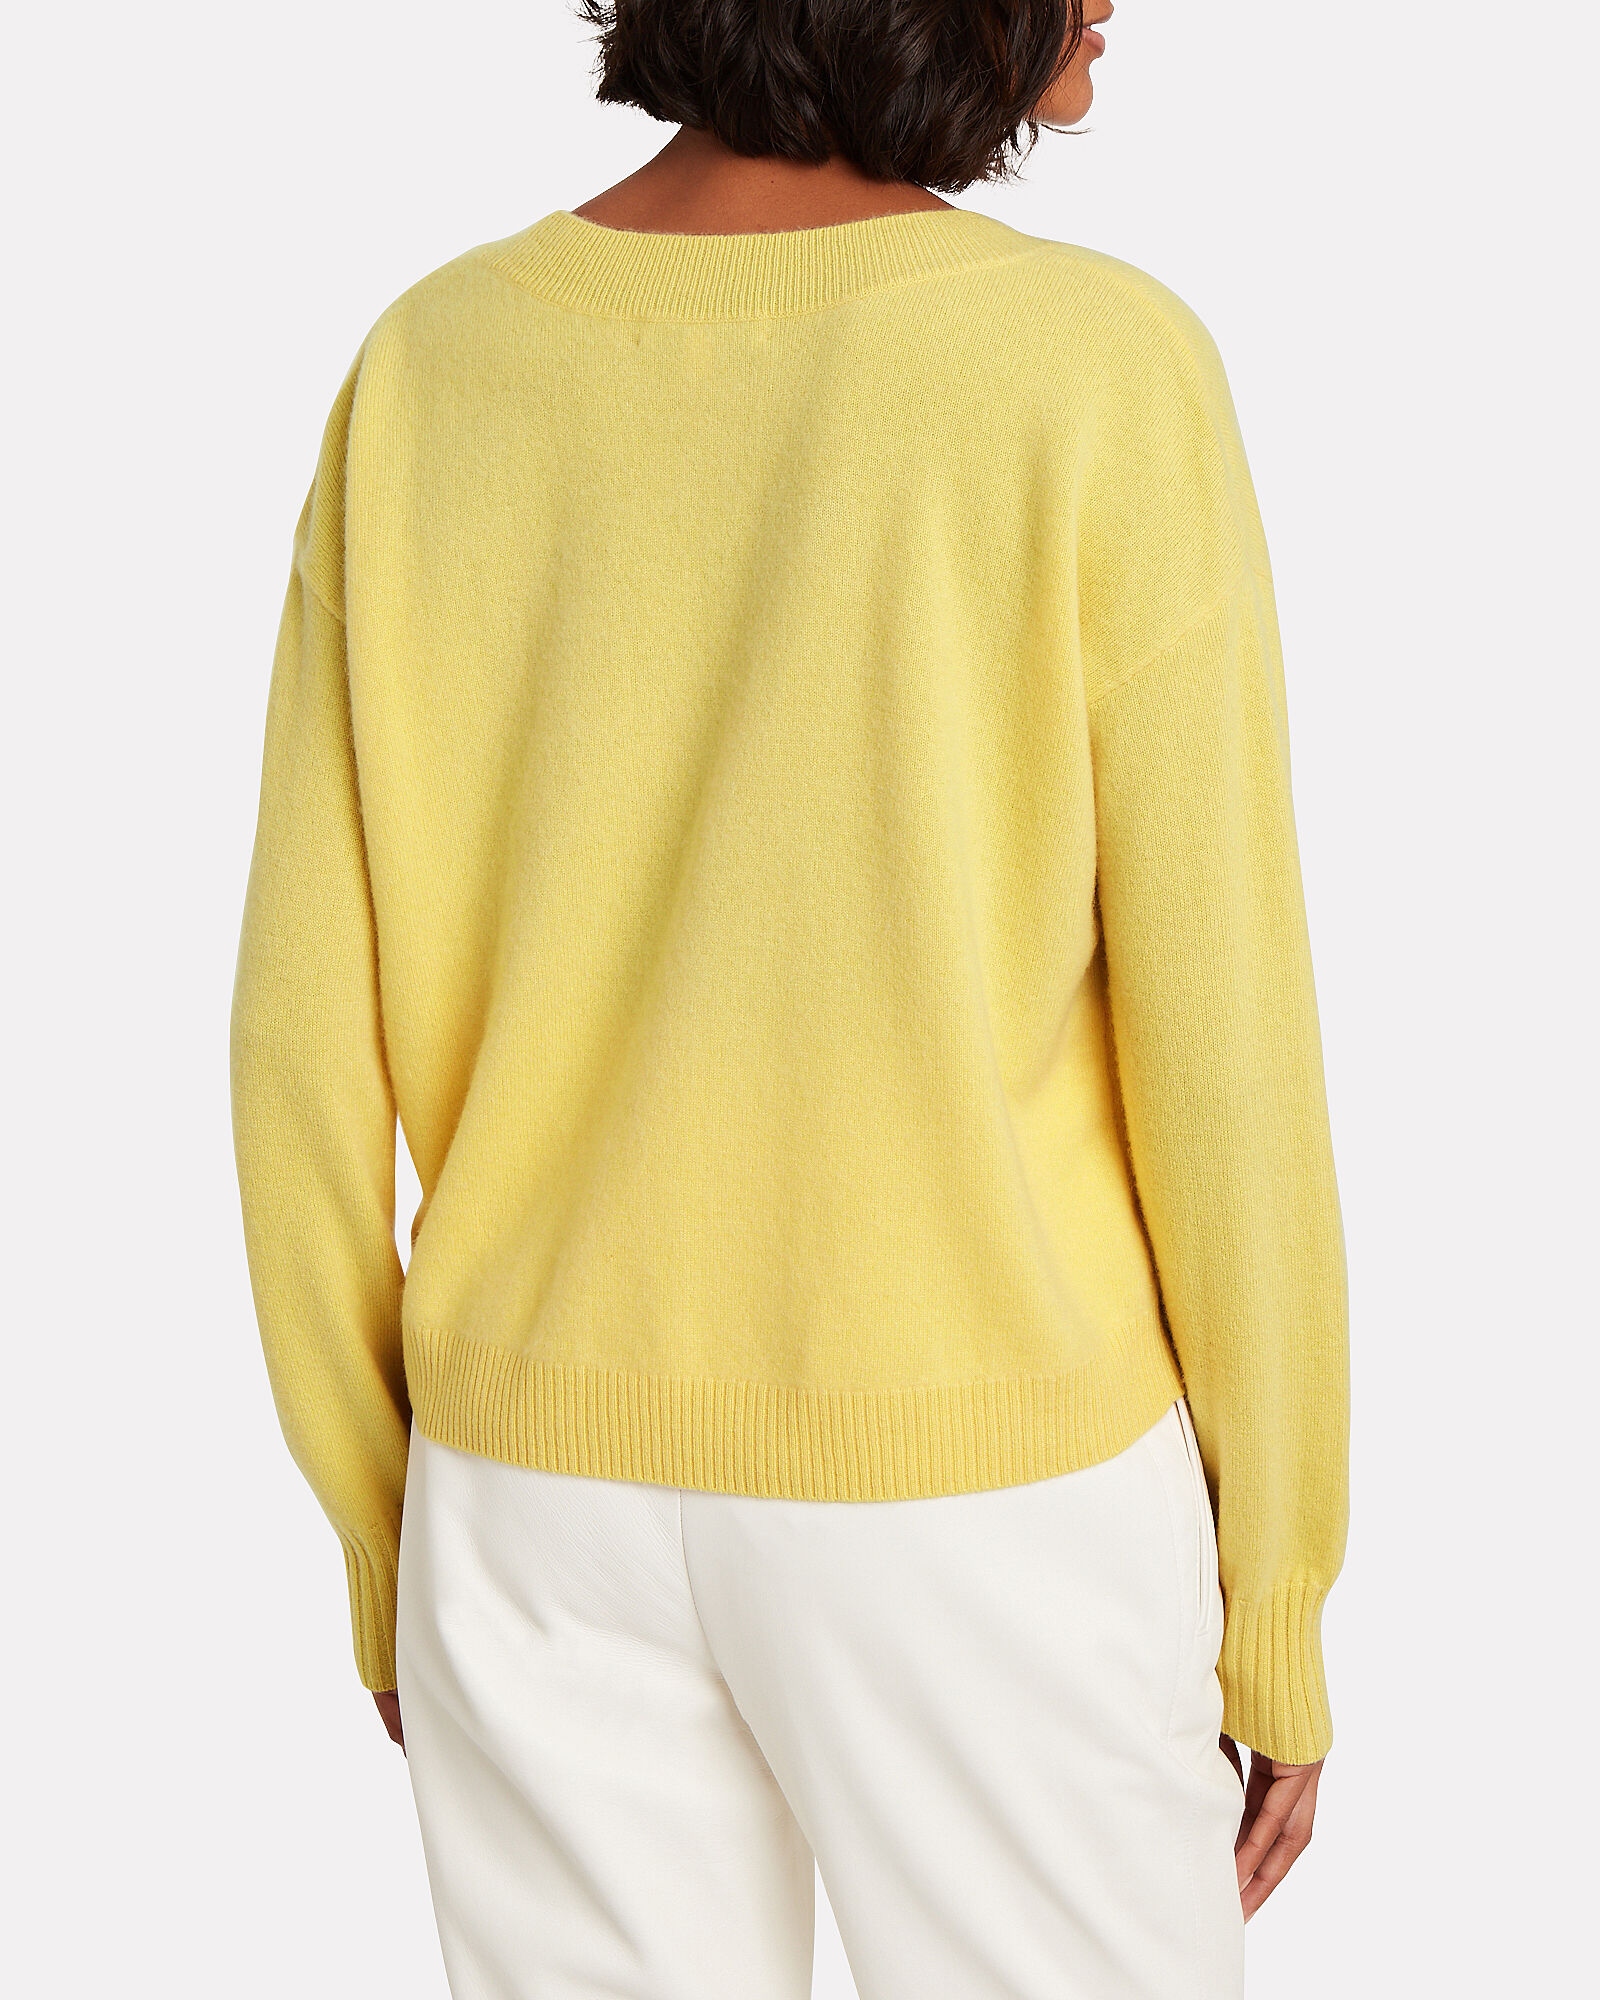 Elroy V-Neck Cashmere Sweater, YELLOW, hi-res